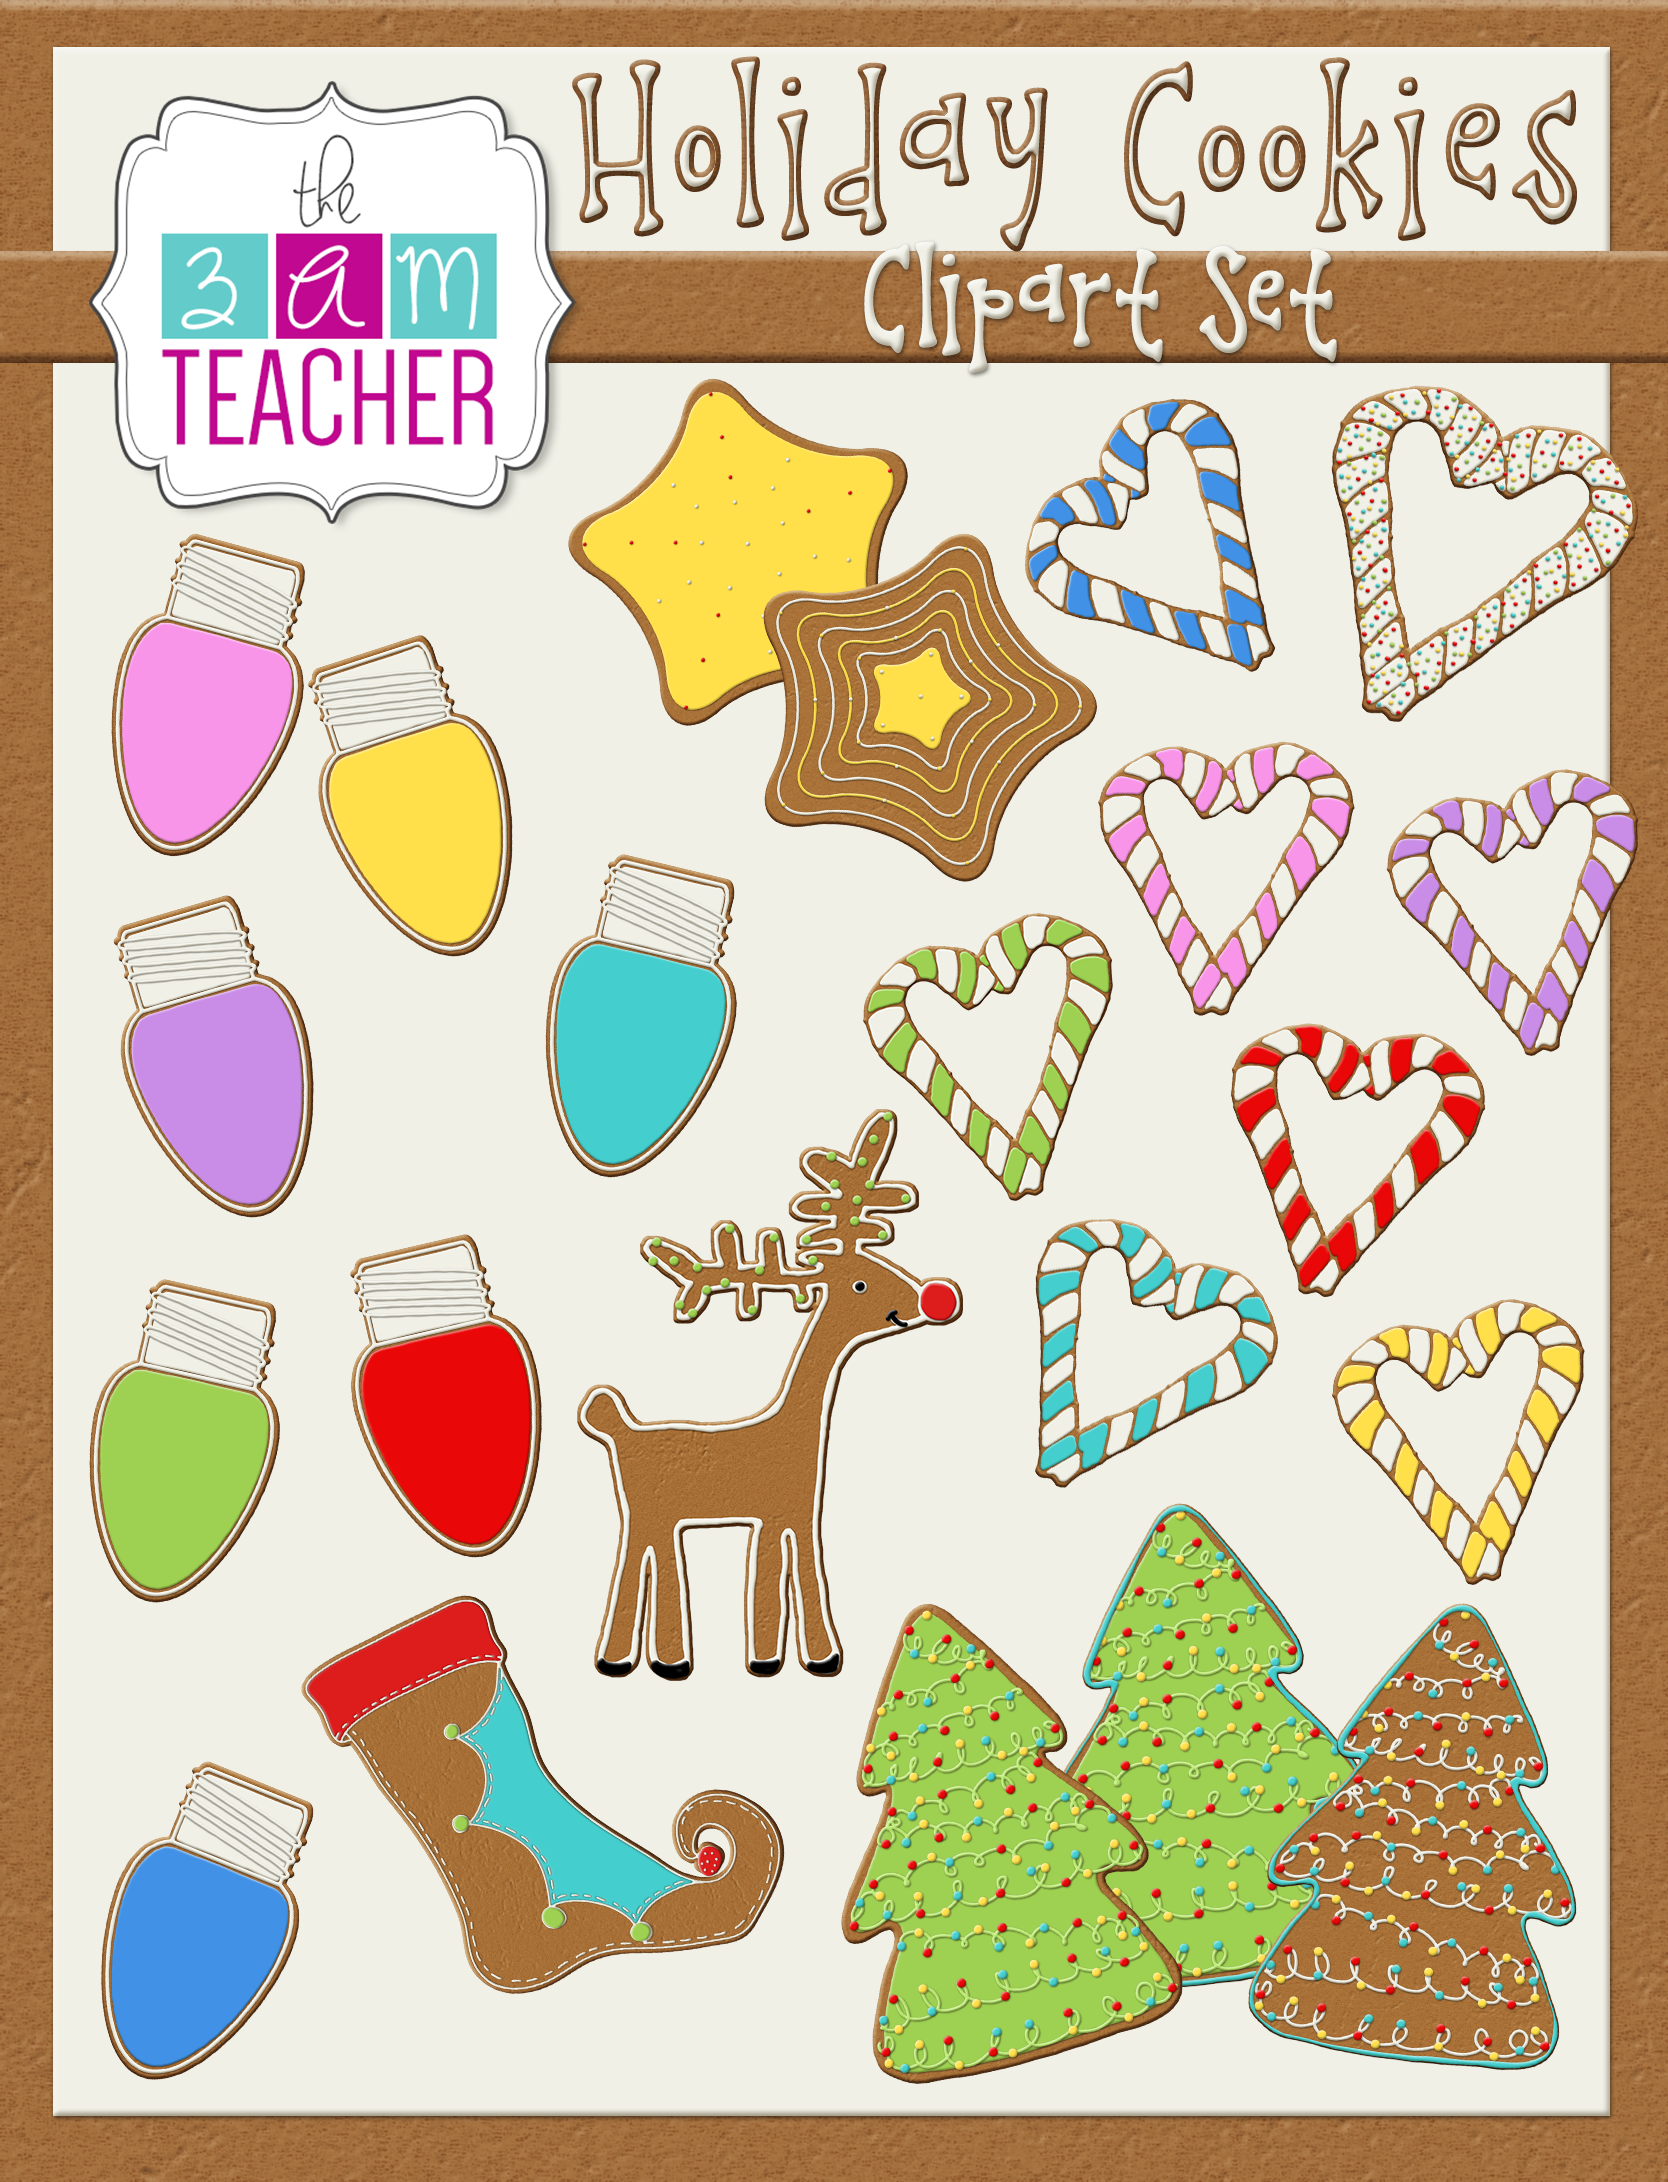 hight resolution of colorful gingerbread holiday cookie clipart images by the 3am teacher 5 00